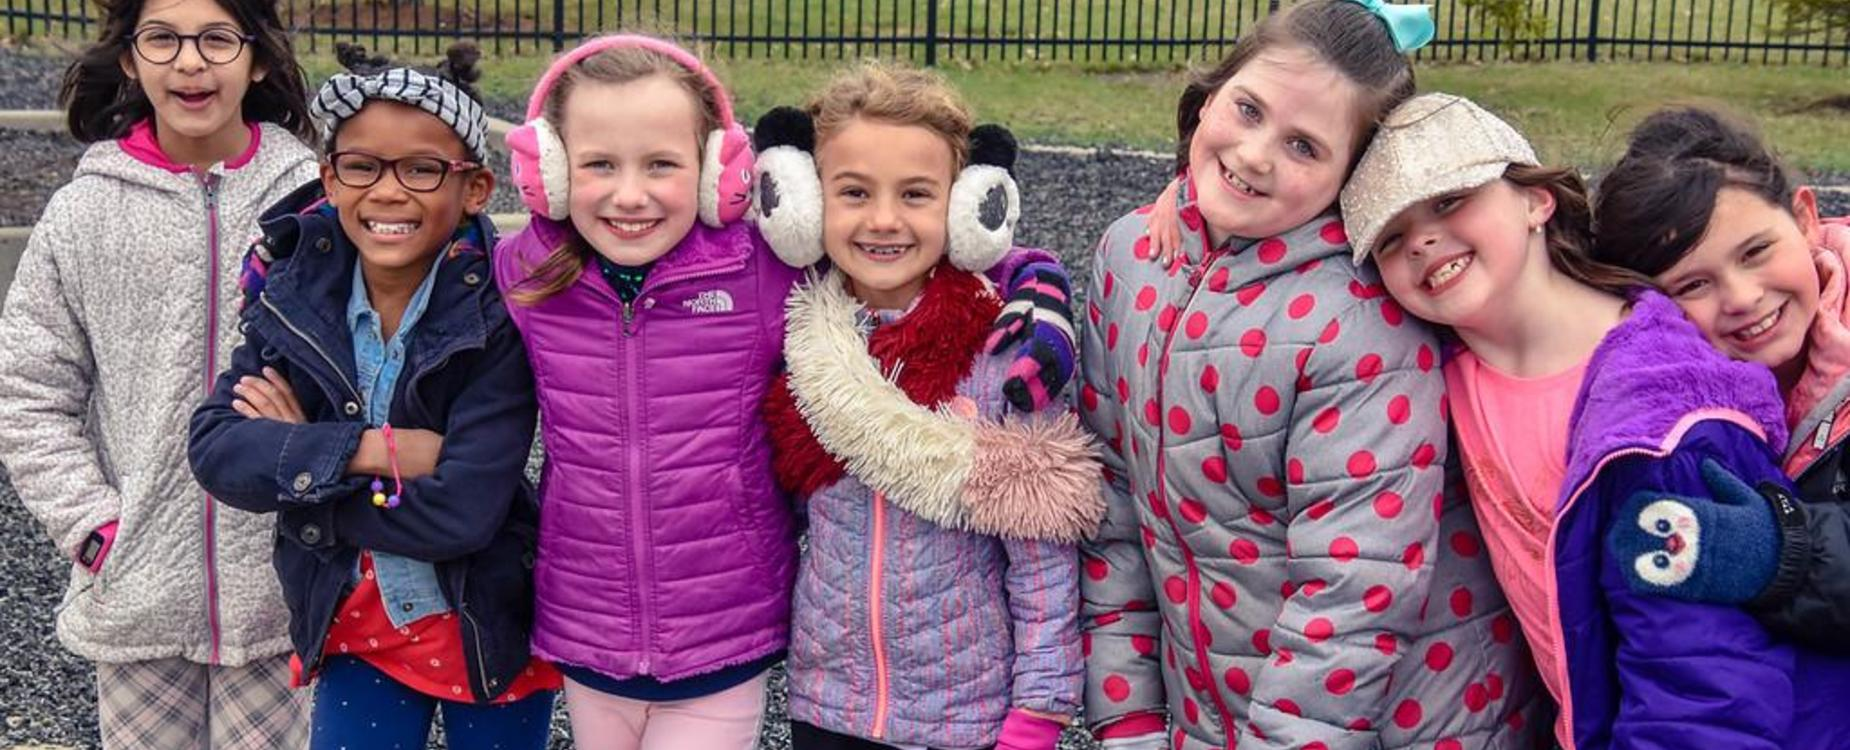 Stonegate students on playground.